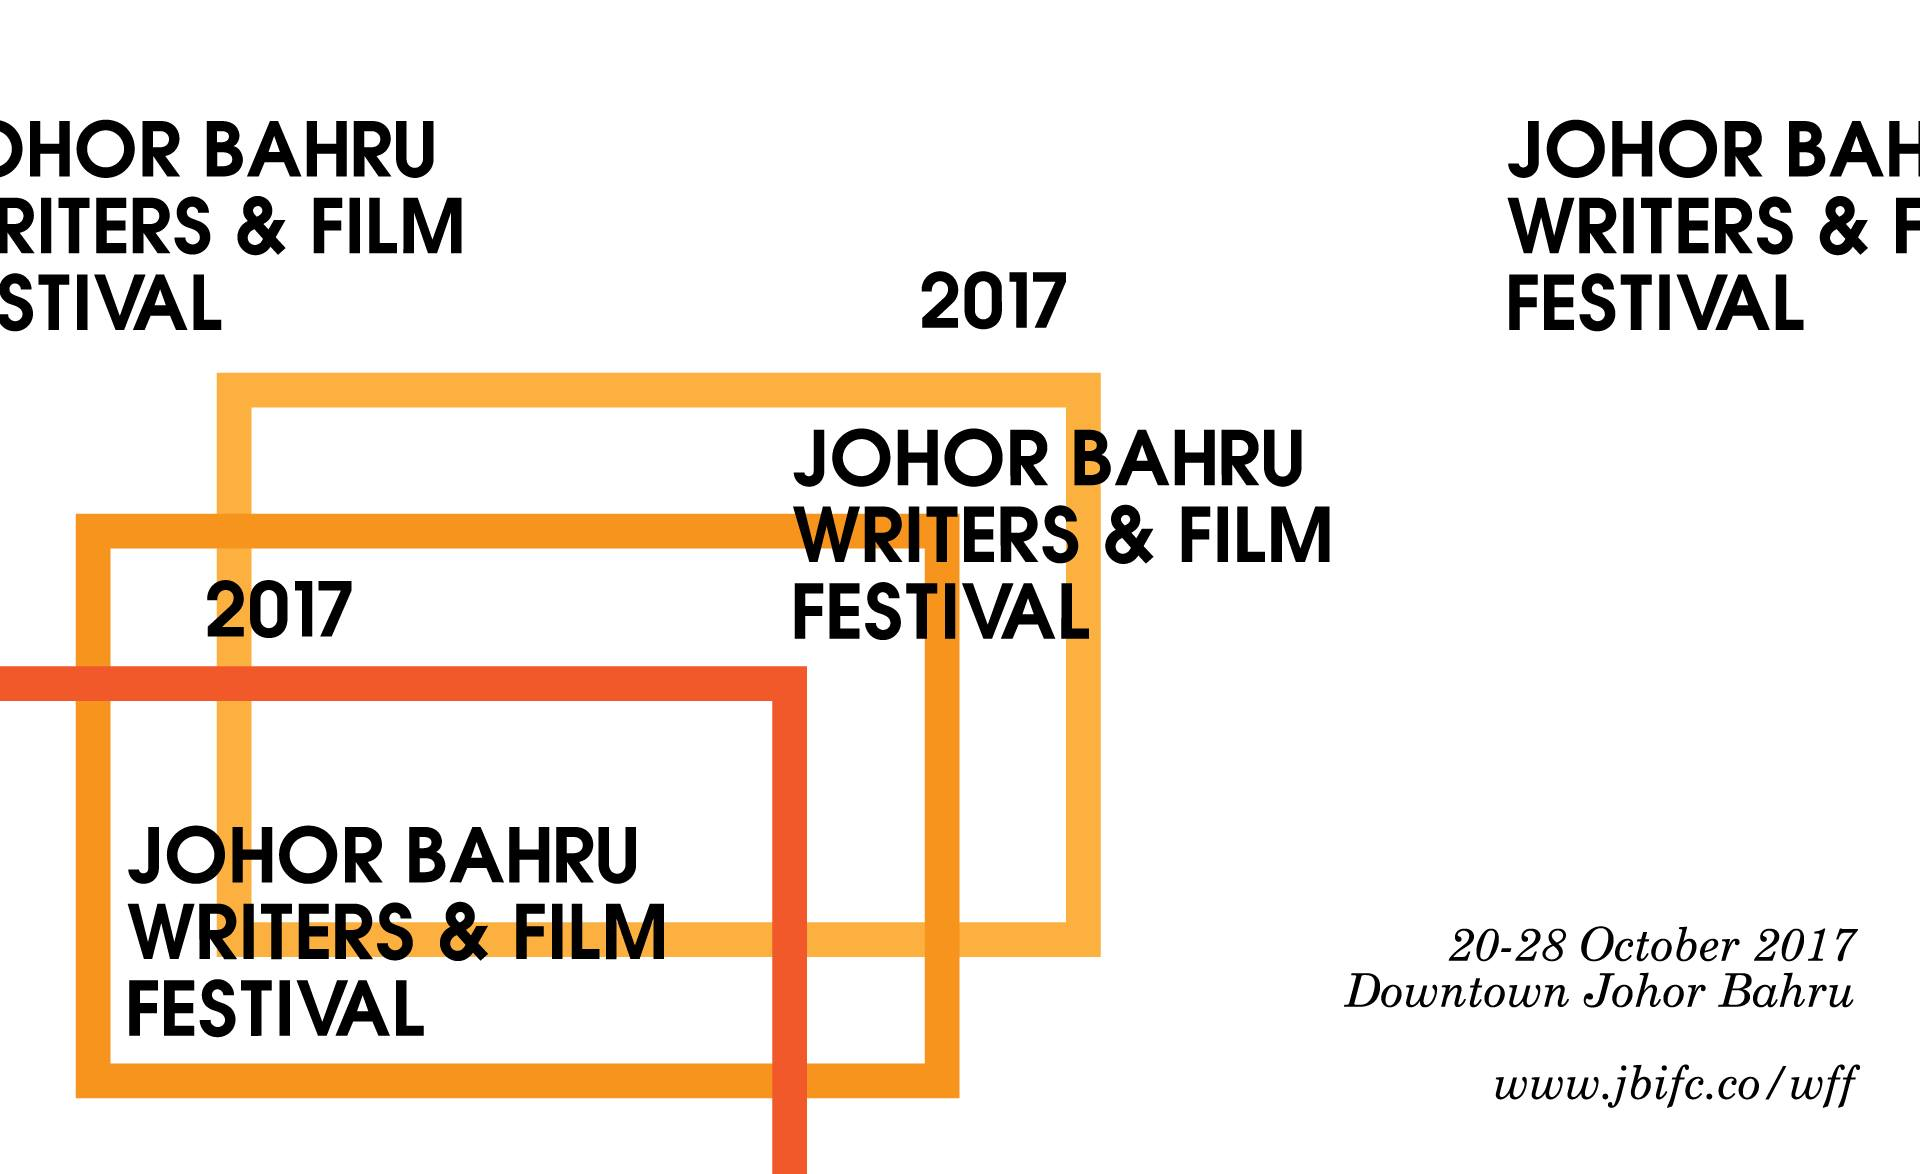 Johor Bahru Writers and Film Festival 2017 | 20-28 October 2017